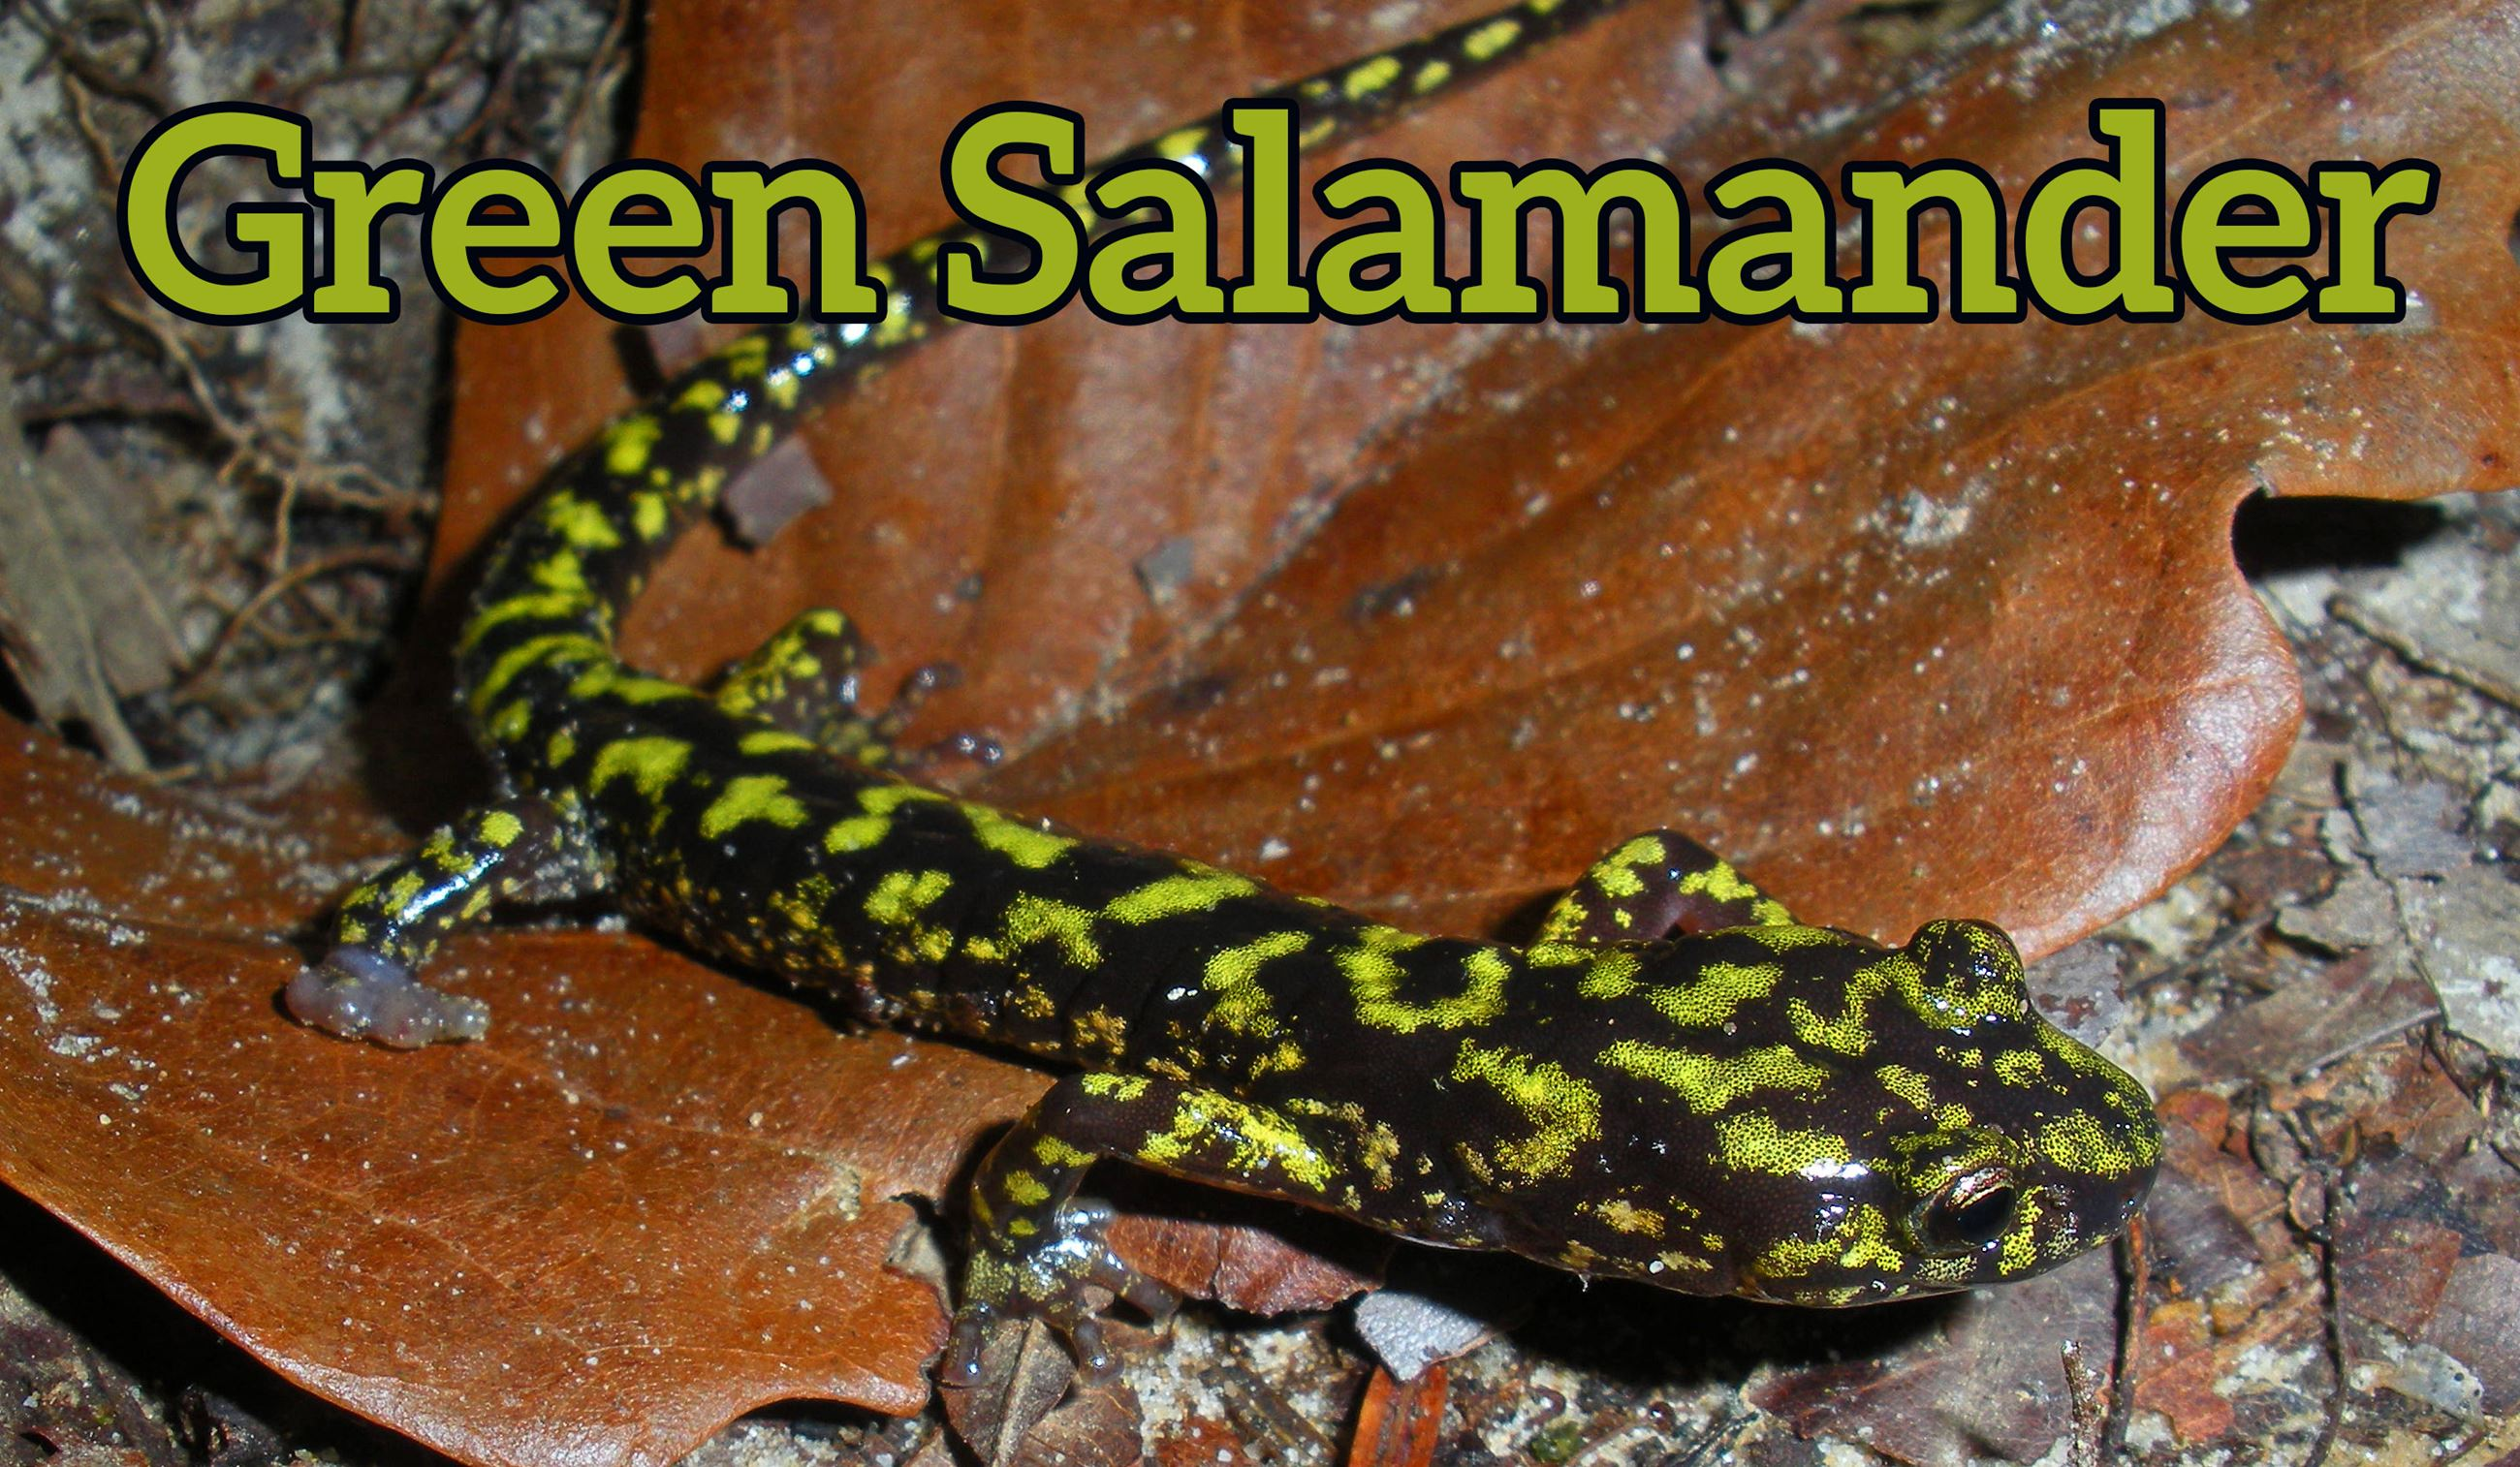 Photo of a green salamander